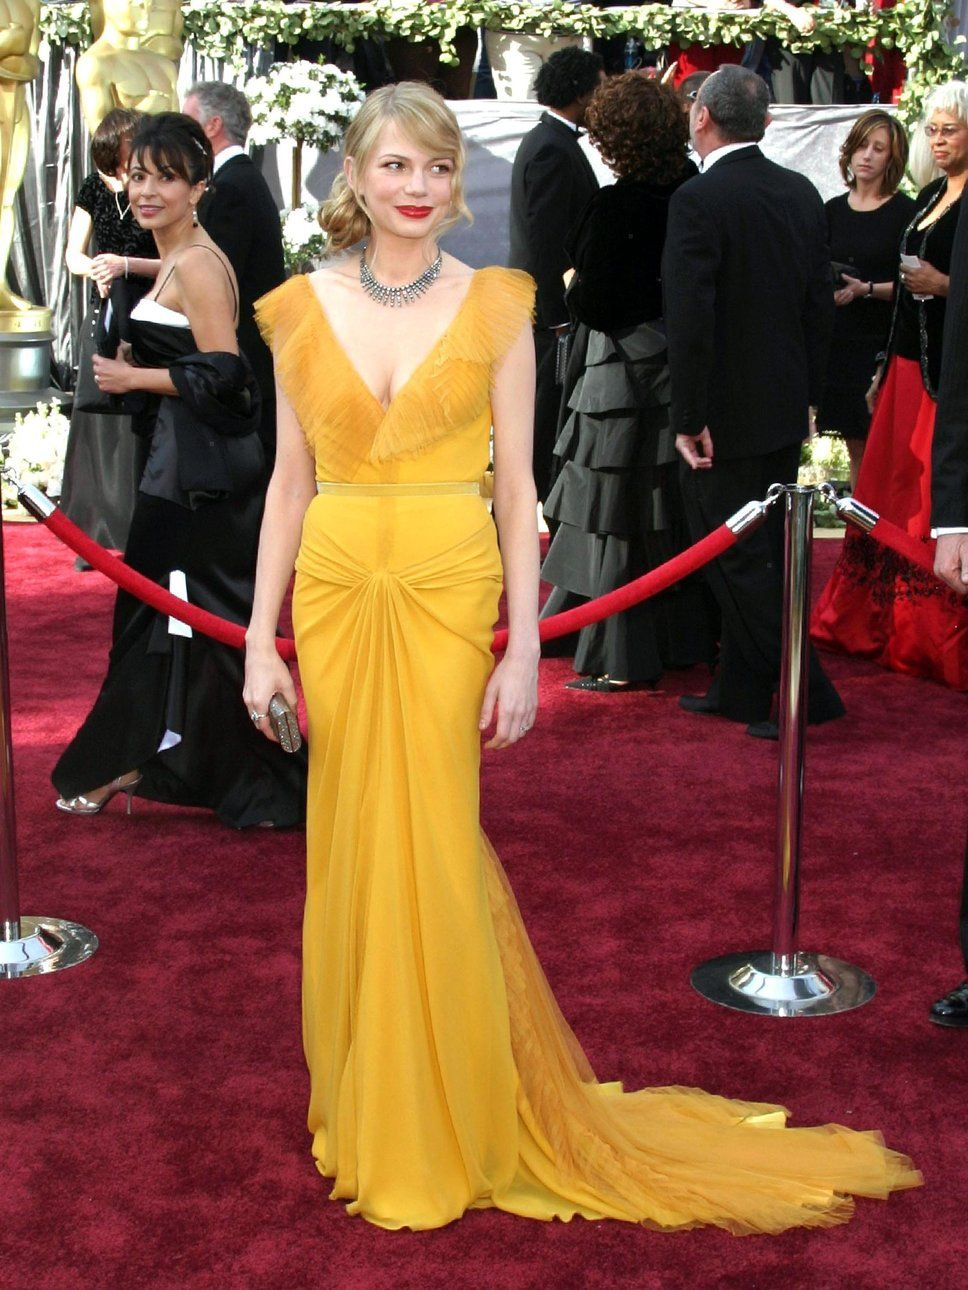 58ad881f0d4 michelle williams  mustard dress remains one of my favorite red carpet  looks of all time.